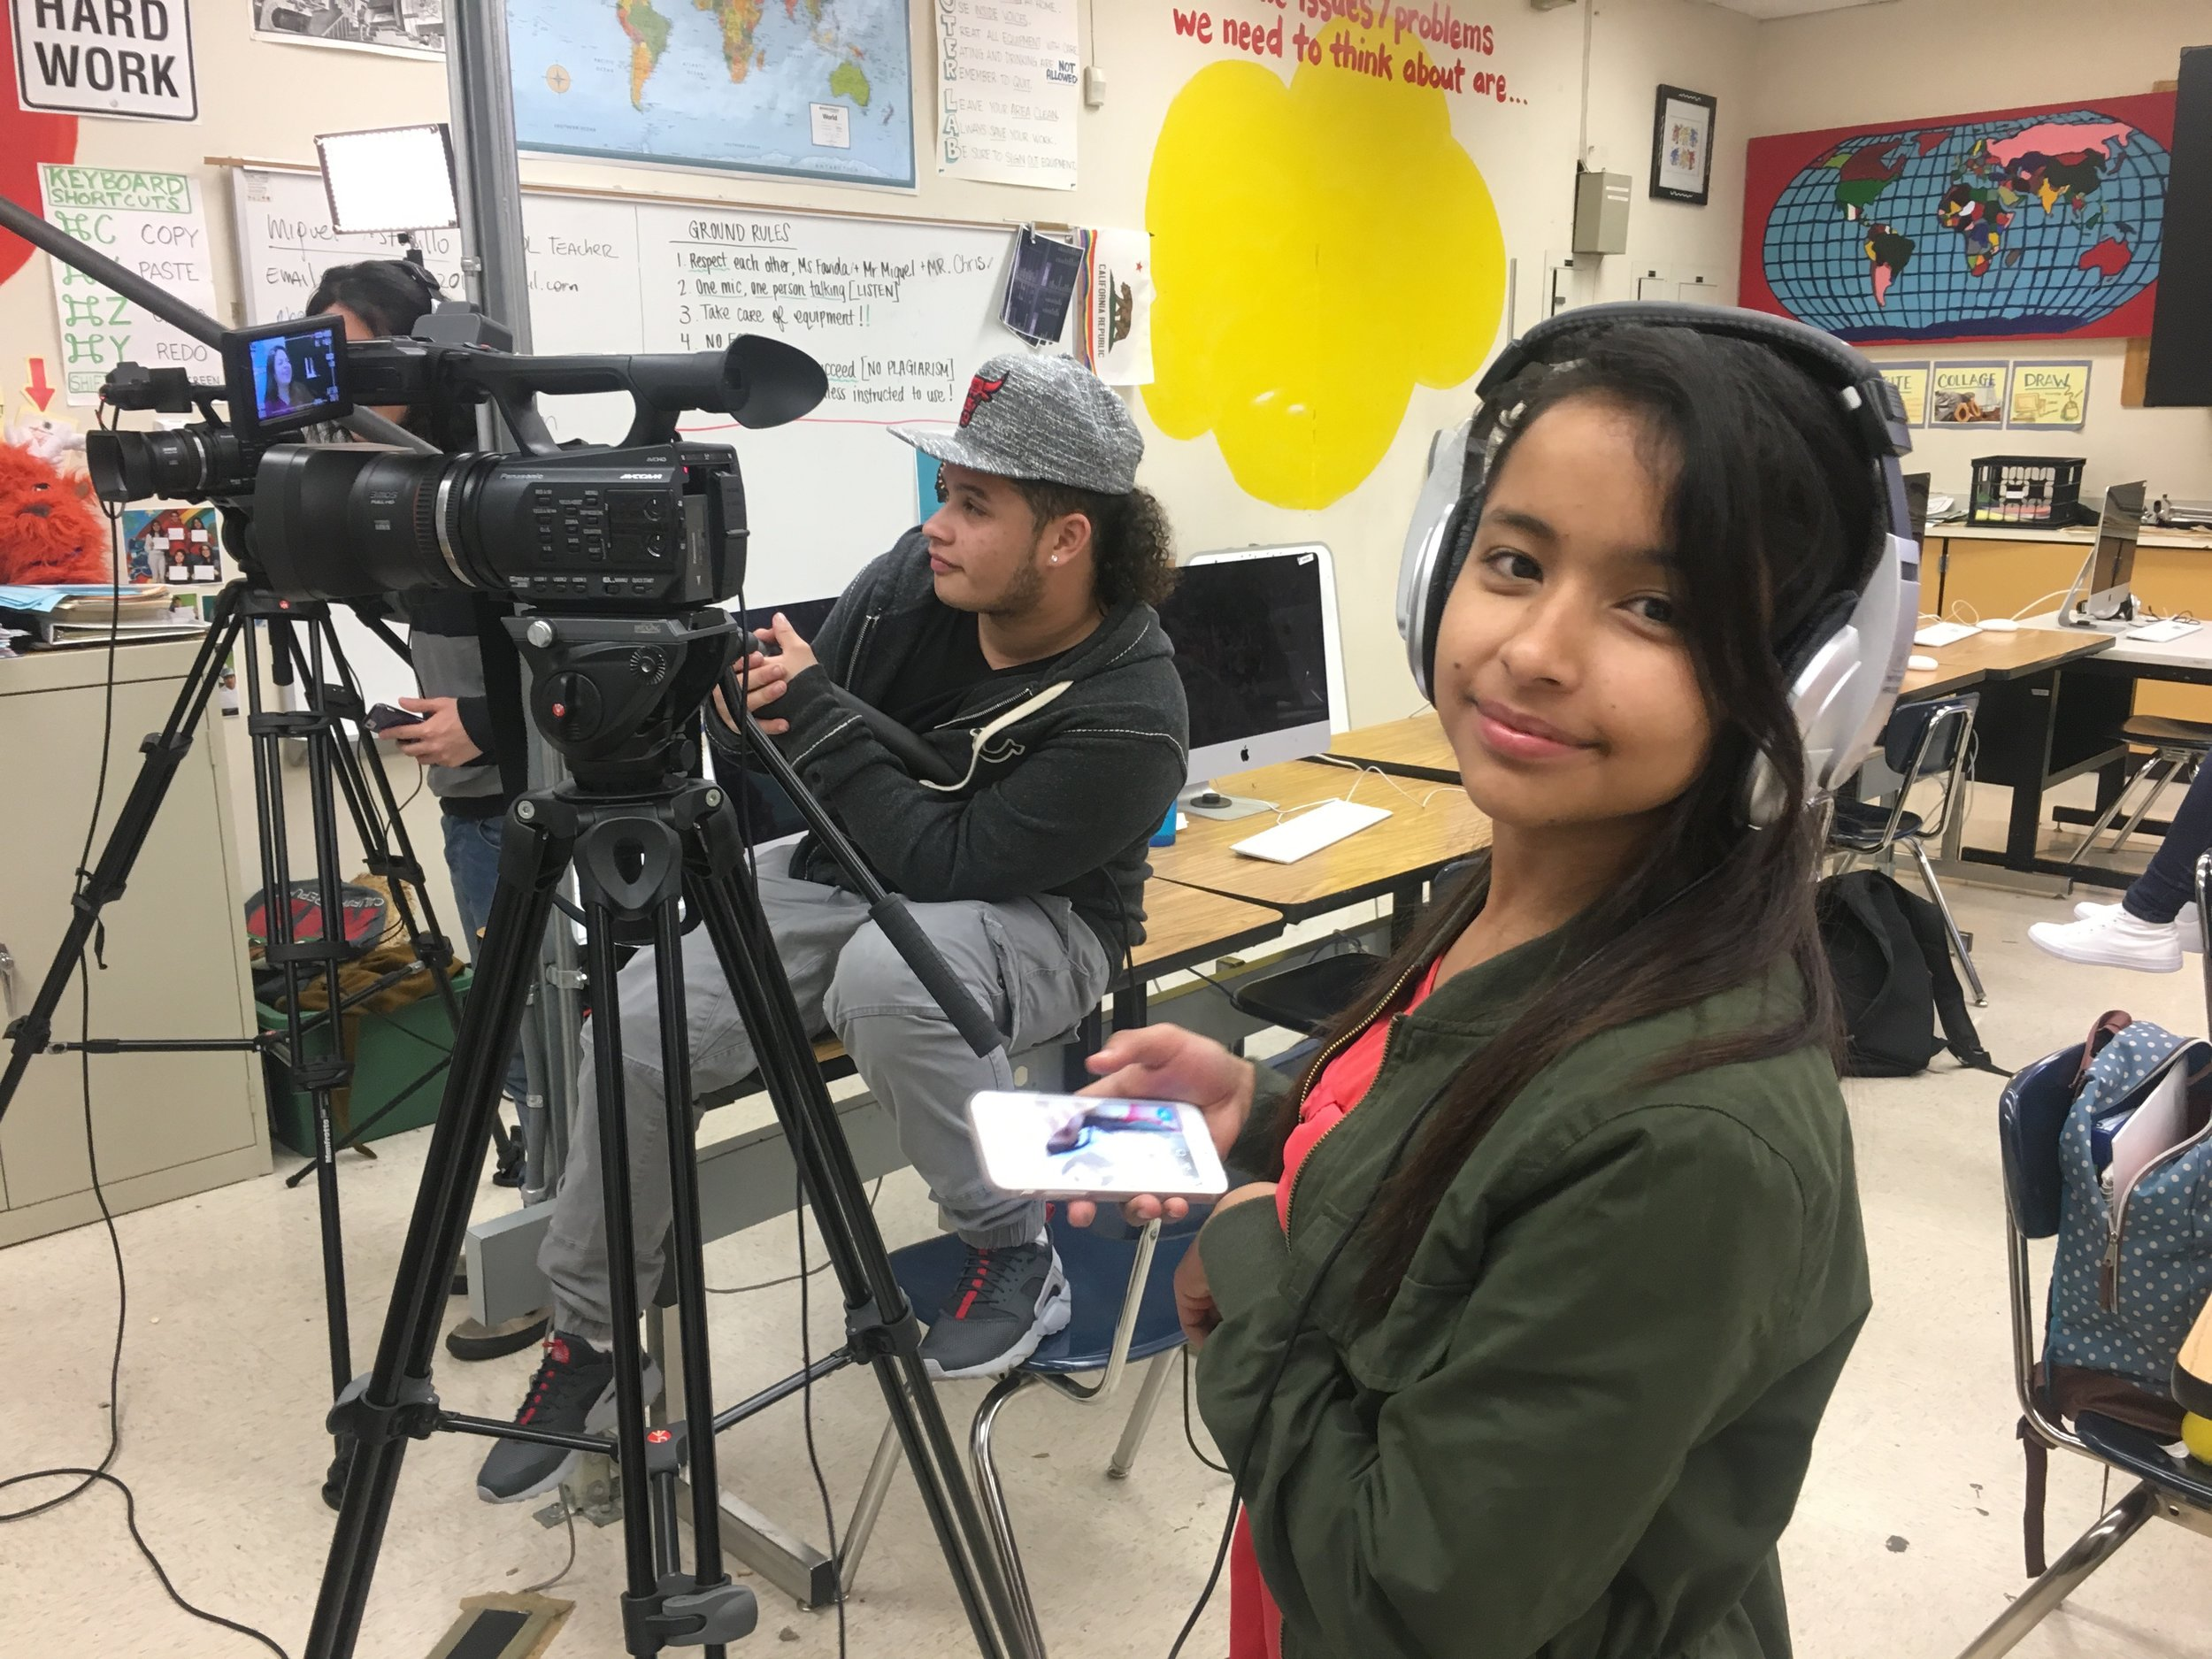 Oakland Unified School District - Youth Beat works closely with OUSD to offer academic credit for our classes and create quality media arts programs in Oakland public schools.We work with schools across the district to craft high quality media arts programs that engage students, bring technology and expertise into under resourced schools, and provide a huge value add to the school's class offerings.Youth Beat currently operates or supports media arts programs at the following schools:Community Day SchoolFremont High SchoolLa Escuelita K-8Madison Park AcademyMetWest High SchoolOakland International High School